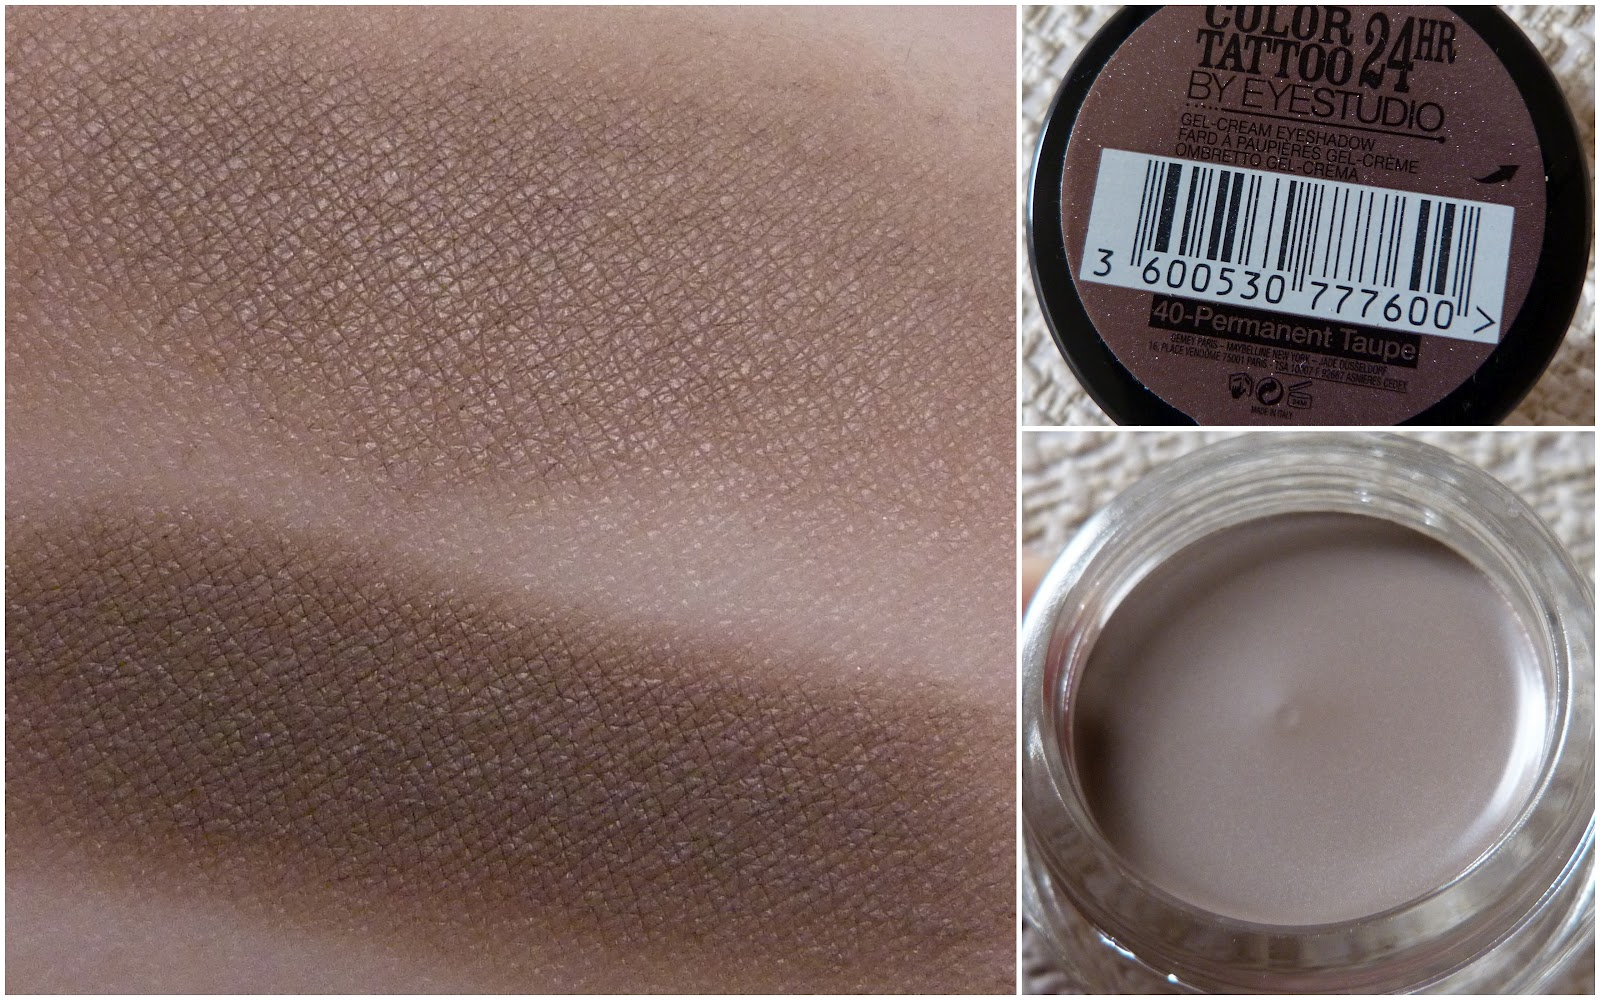 Maybelline color tattoo 24hr permanent taupe love love for Color tattoo maybelline